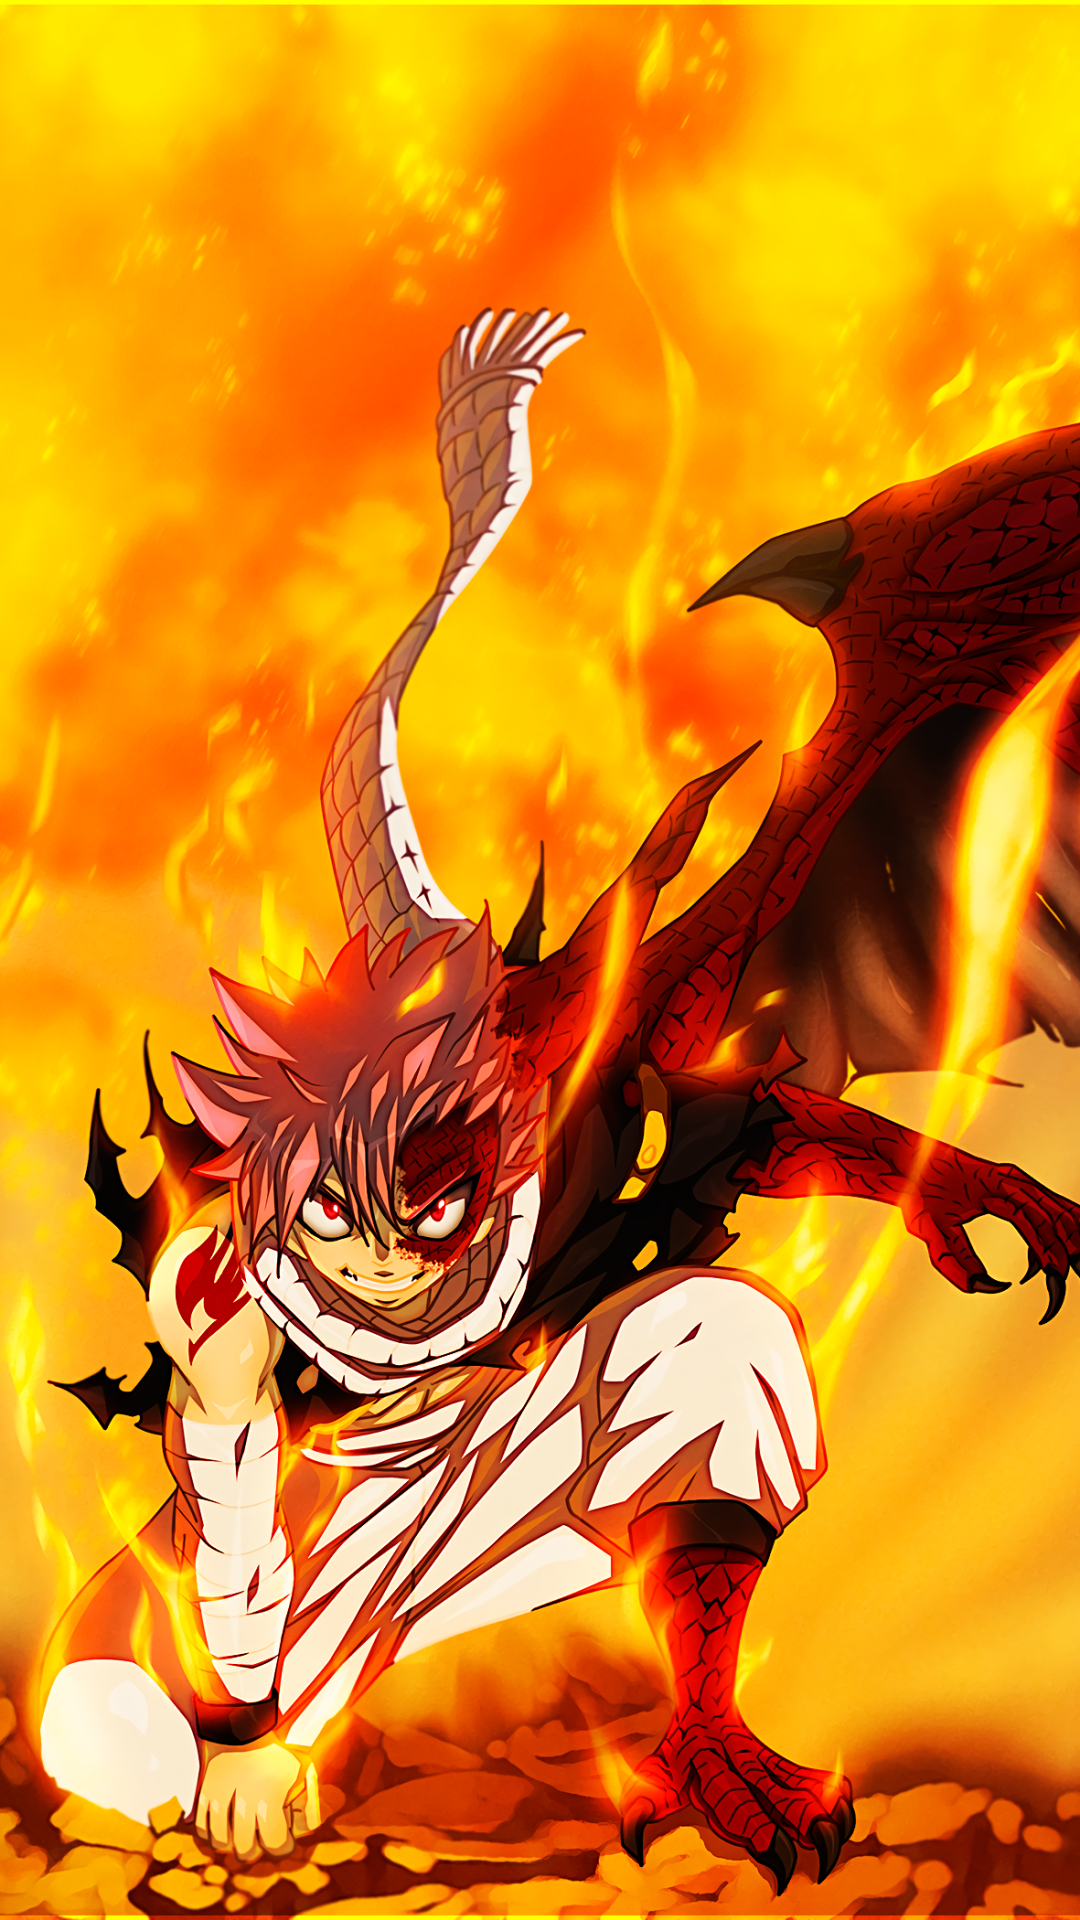 Fairy Tail Natsu Dragon Wallpaper Desktop Background Is Cool Wallpapers